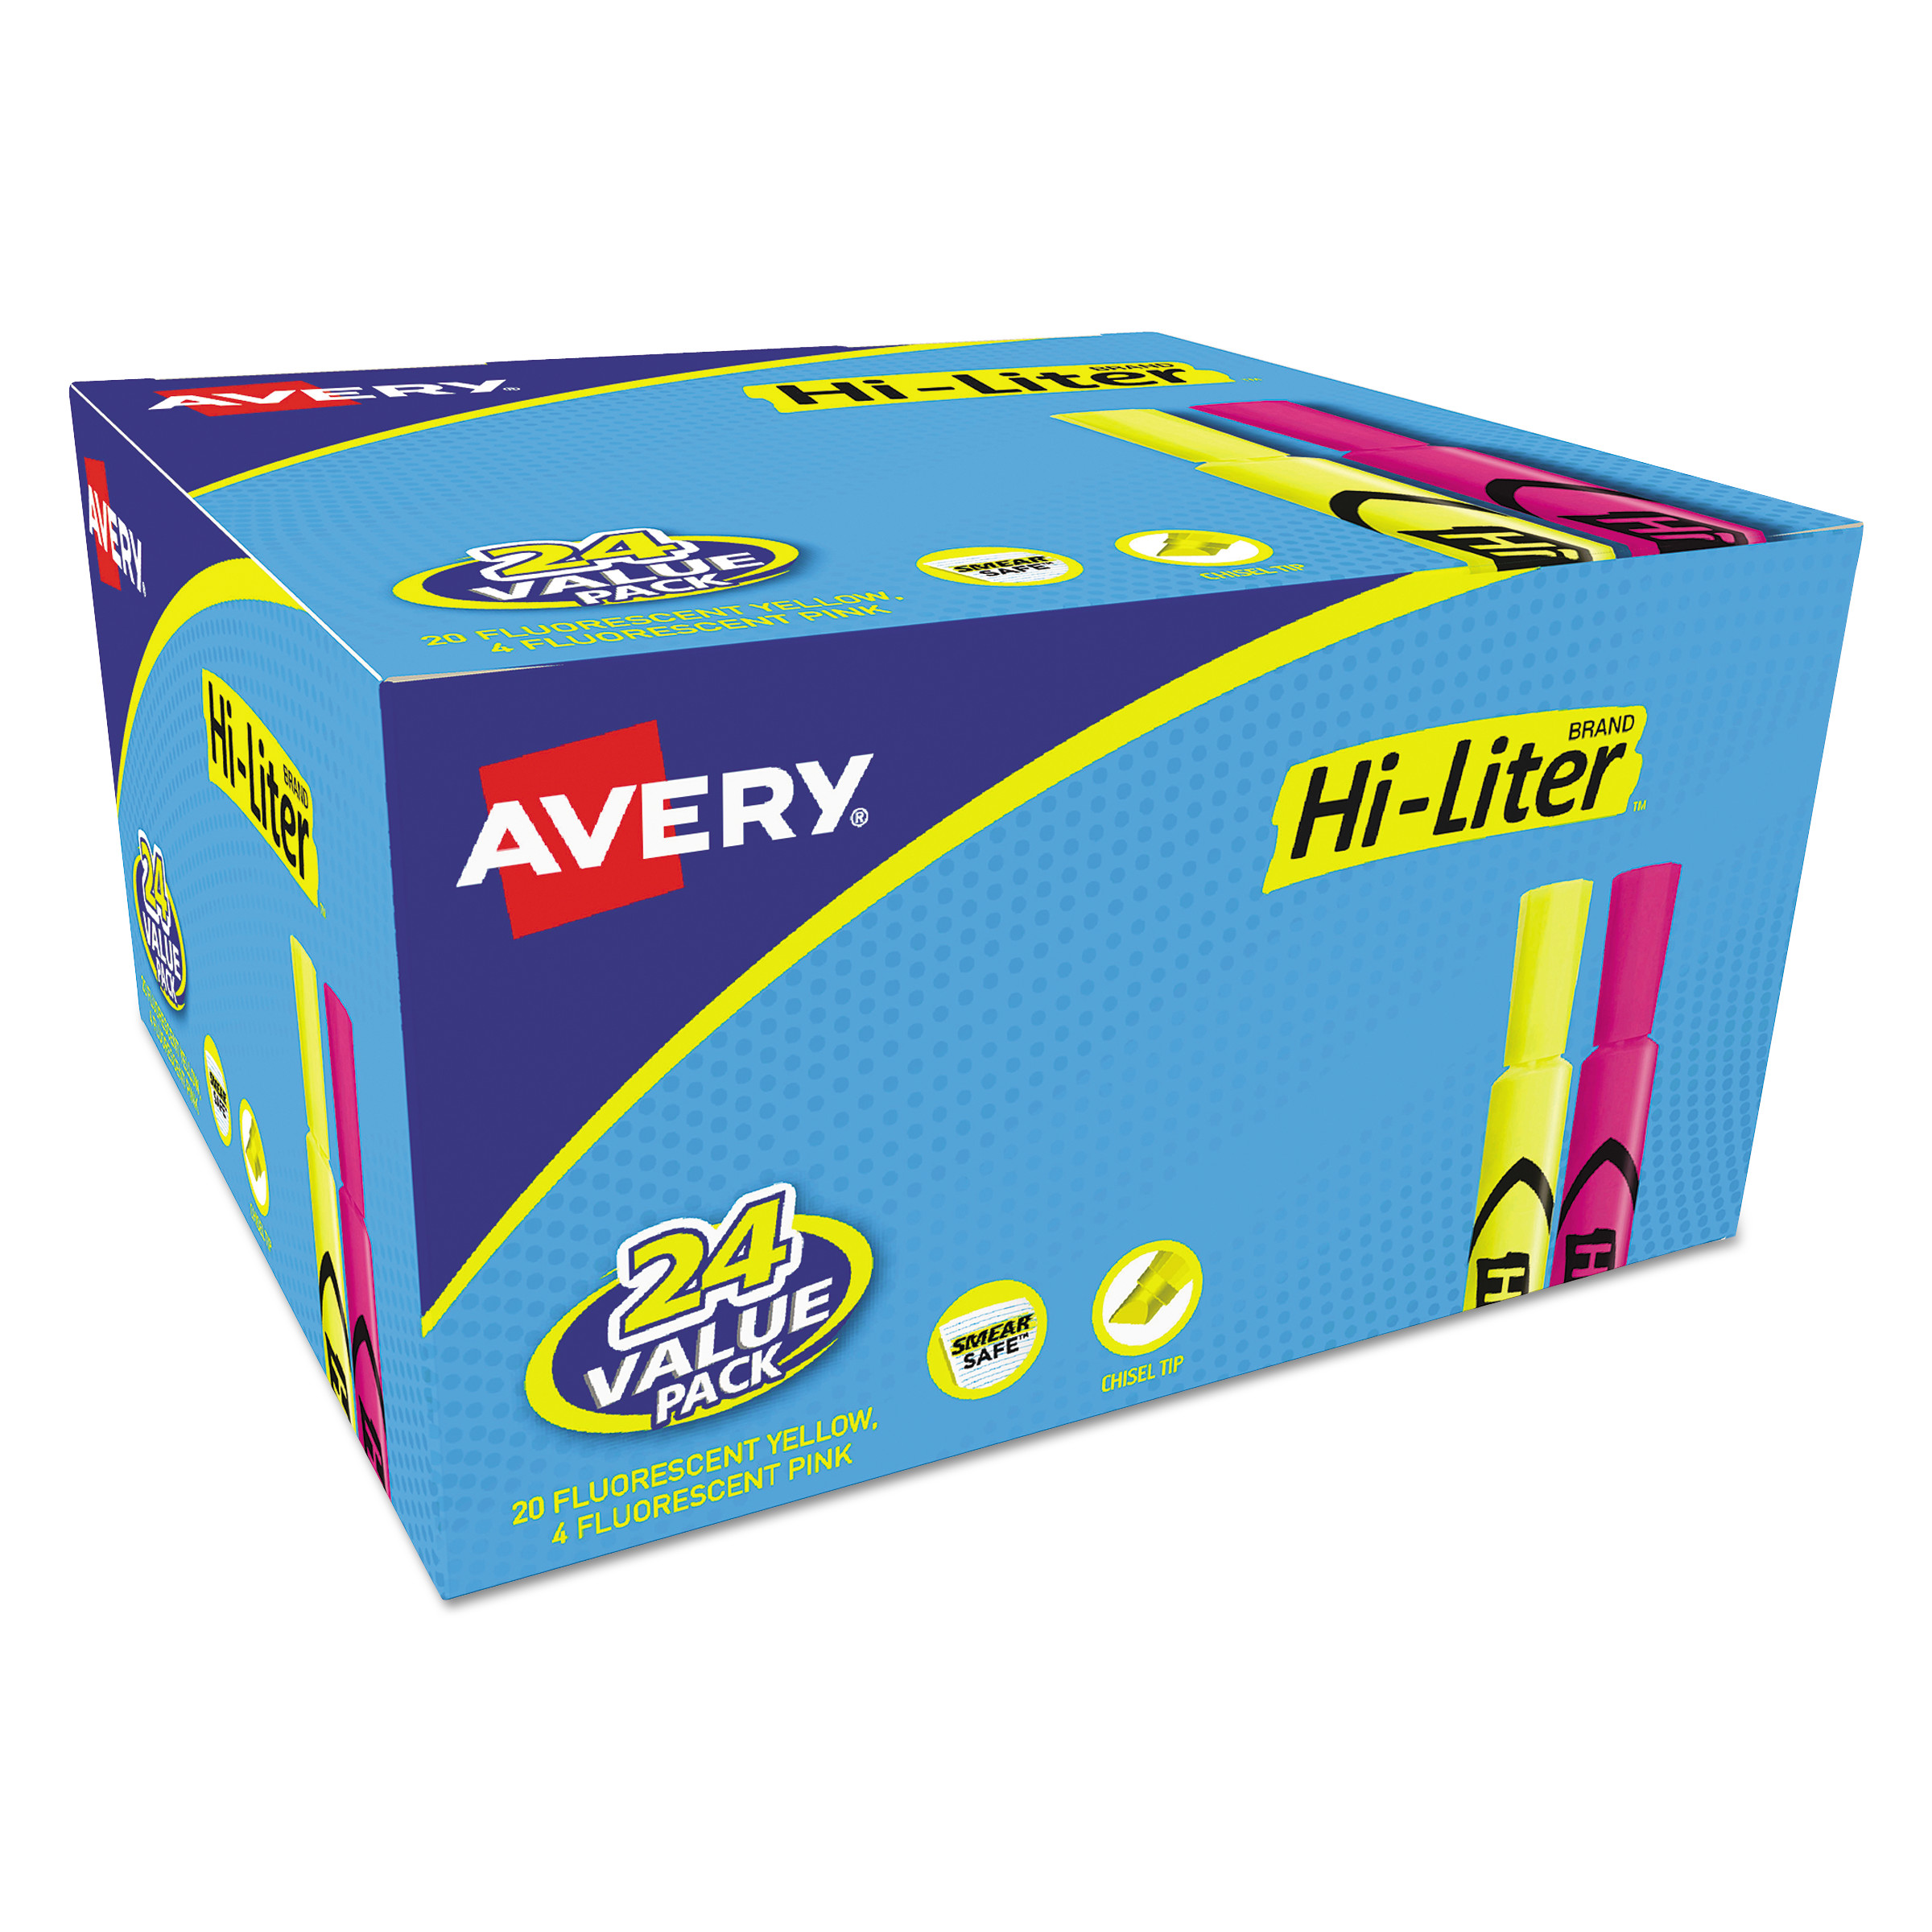 Avery HI-LITER Desk-Style Highlighter, Chisel, Assorted Colors, 24 Pack by AVERY-DENNISON